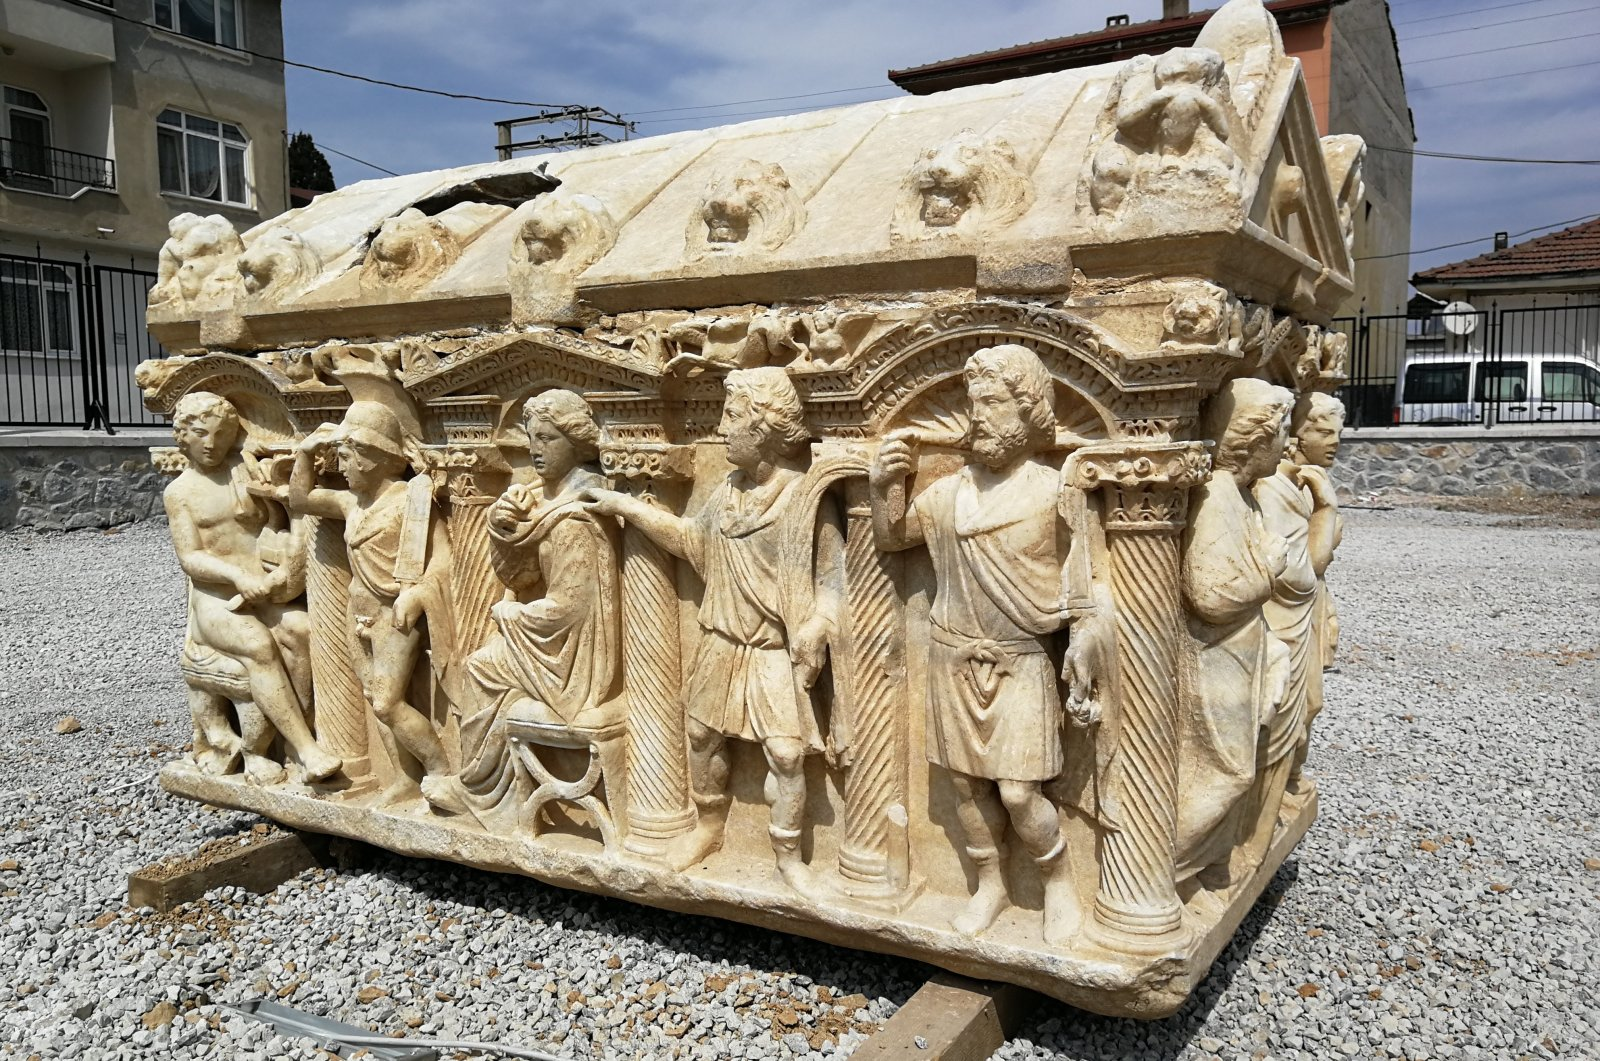 A sarcophagus with large engravings of men, women and animals rests in the sun at the Iznik Museum, Bursa, Turkey, June 1, 2021. (IHA Photo)